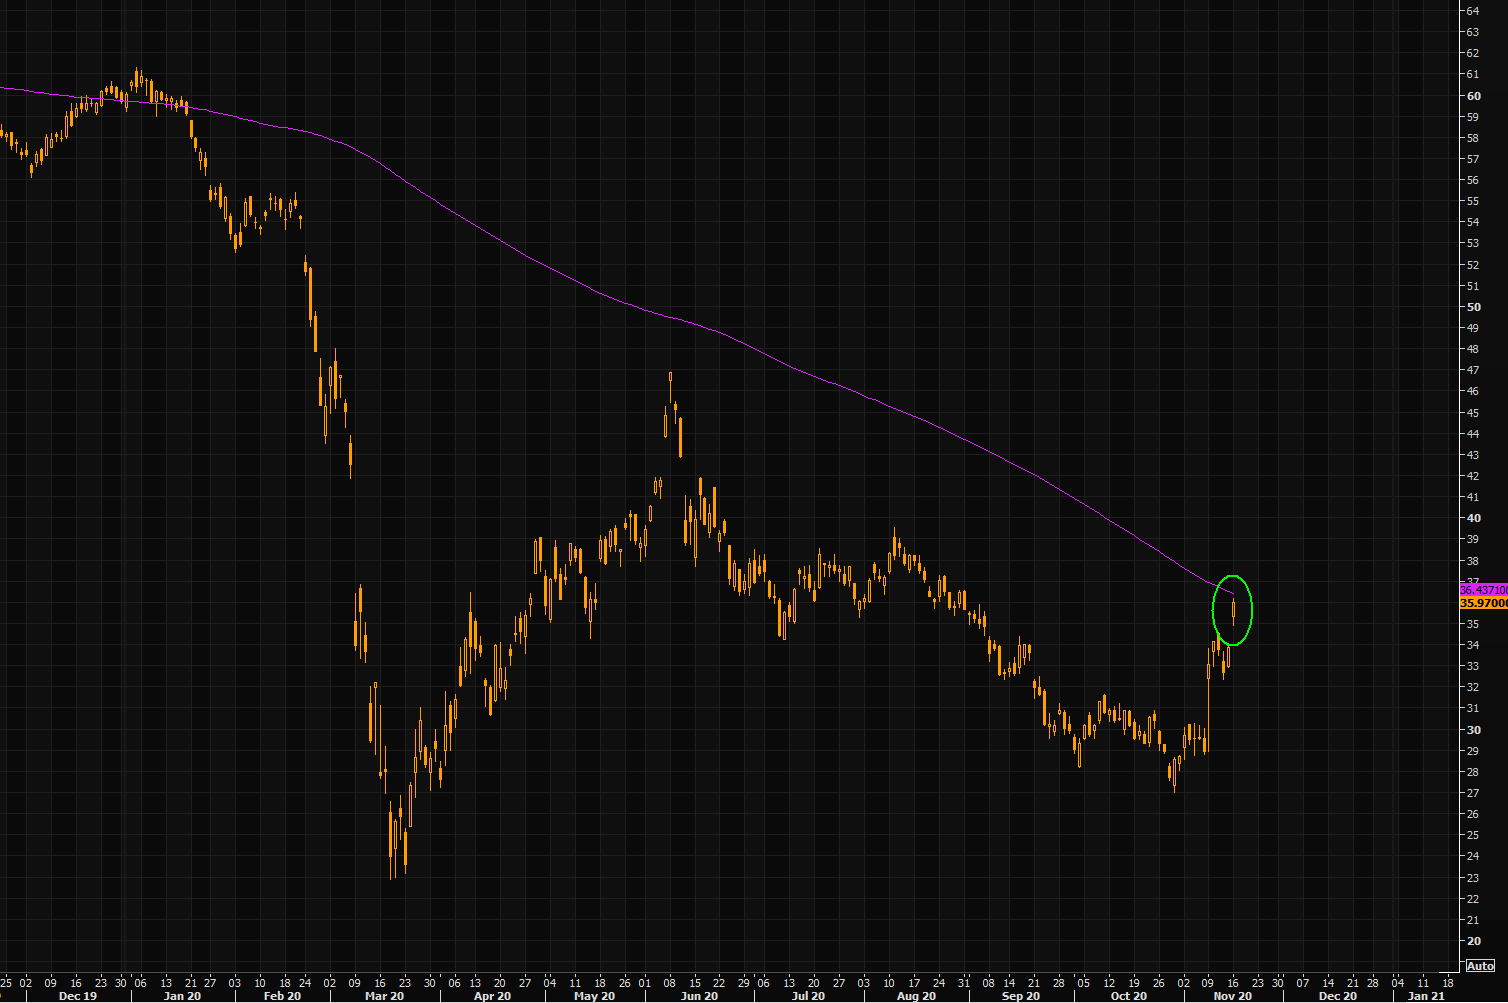 Energy Select Sector SPDR Fund (XLE) chart with 200d Moving Average